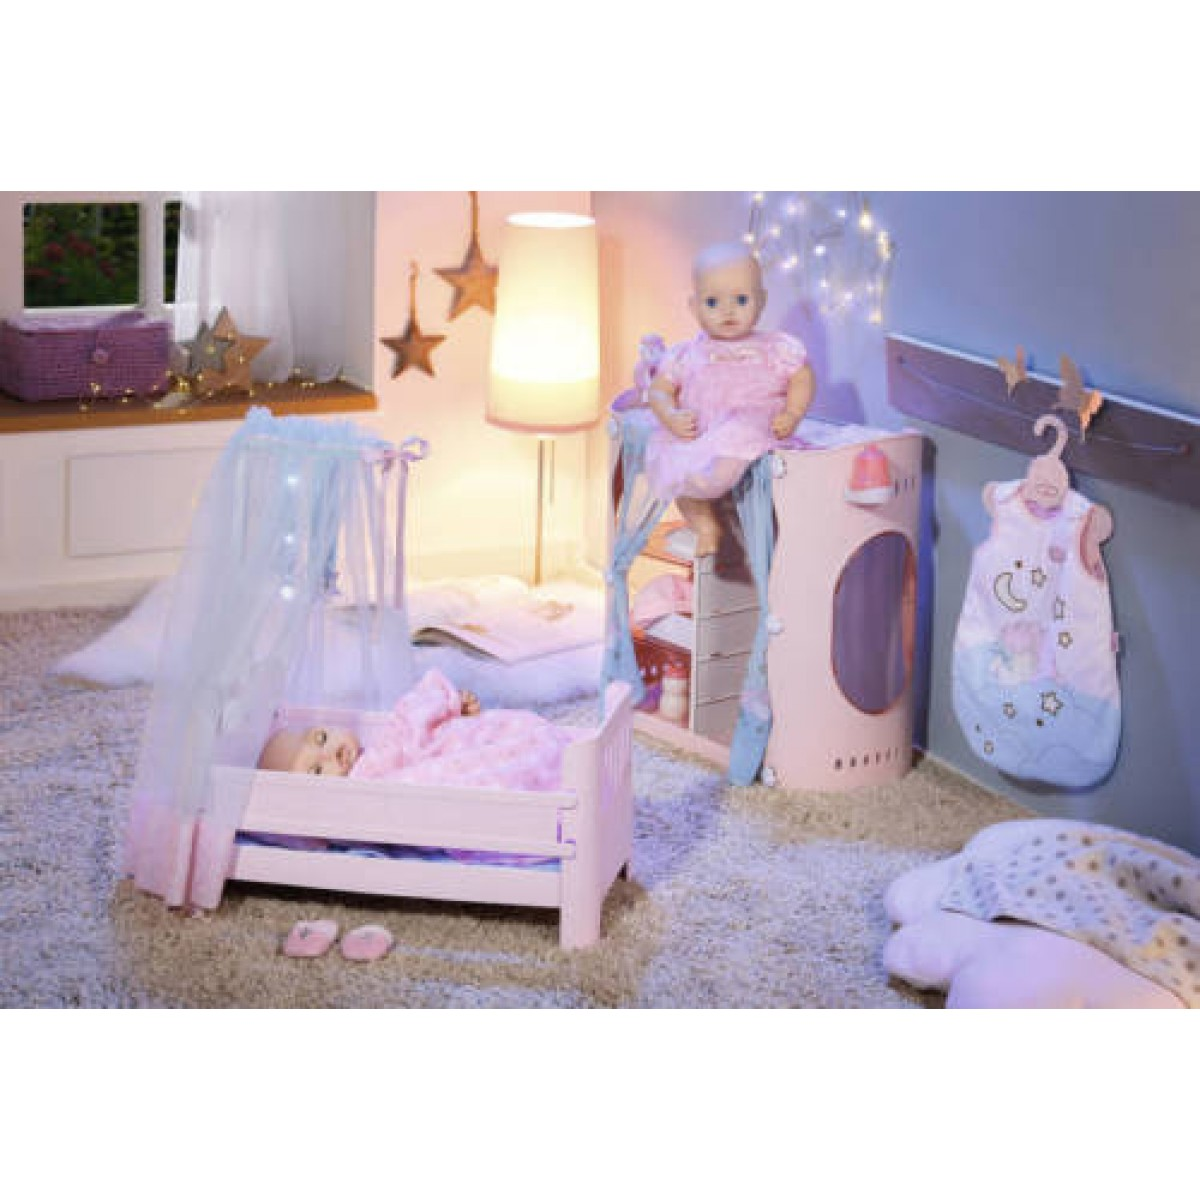 baby annabell sweet dreams puppenbett. Black Bedroom Furniture Sets. Home Design Ideas